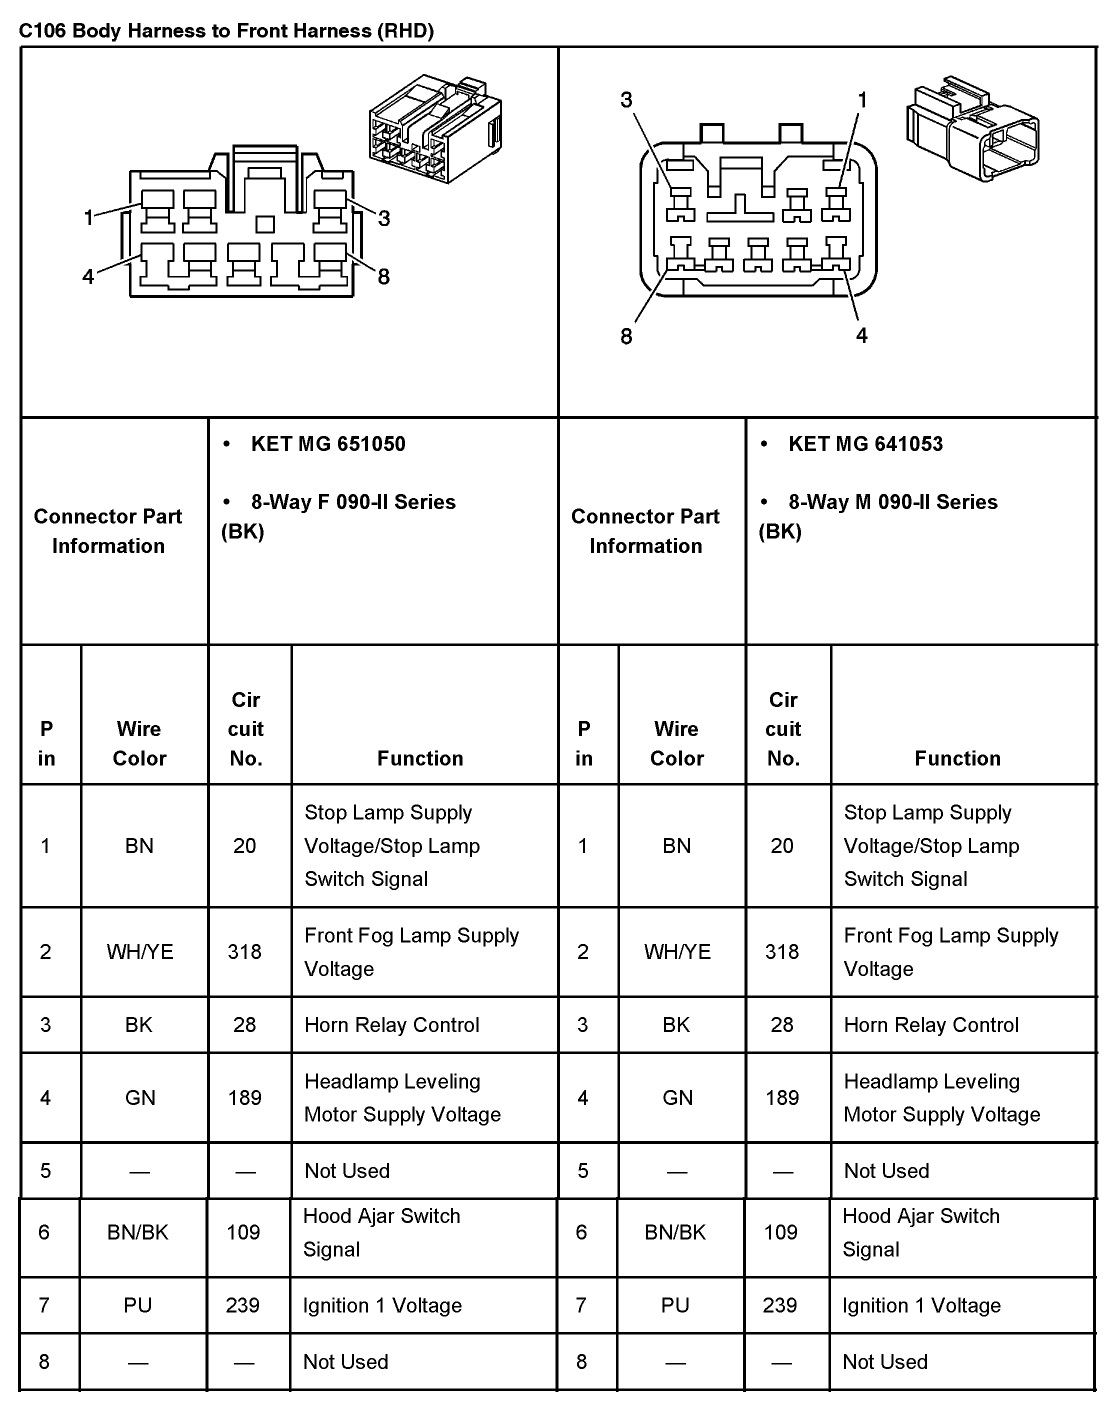 2005 Chevy Aveo Fuse Box Another Blog About Wiring Diagram Kenworth T300 Location 33